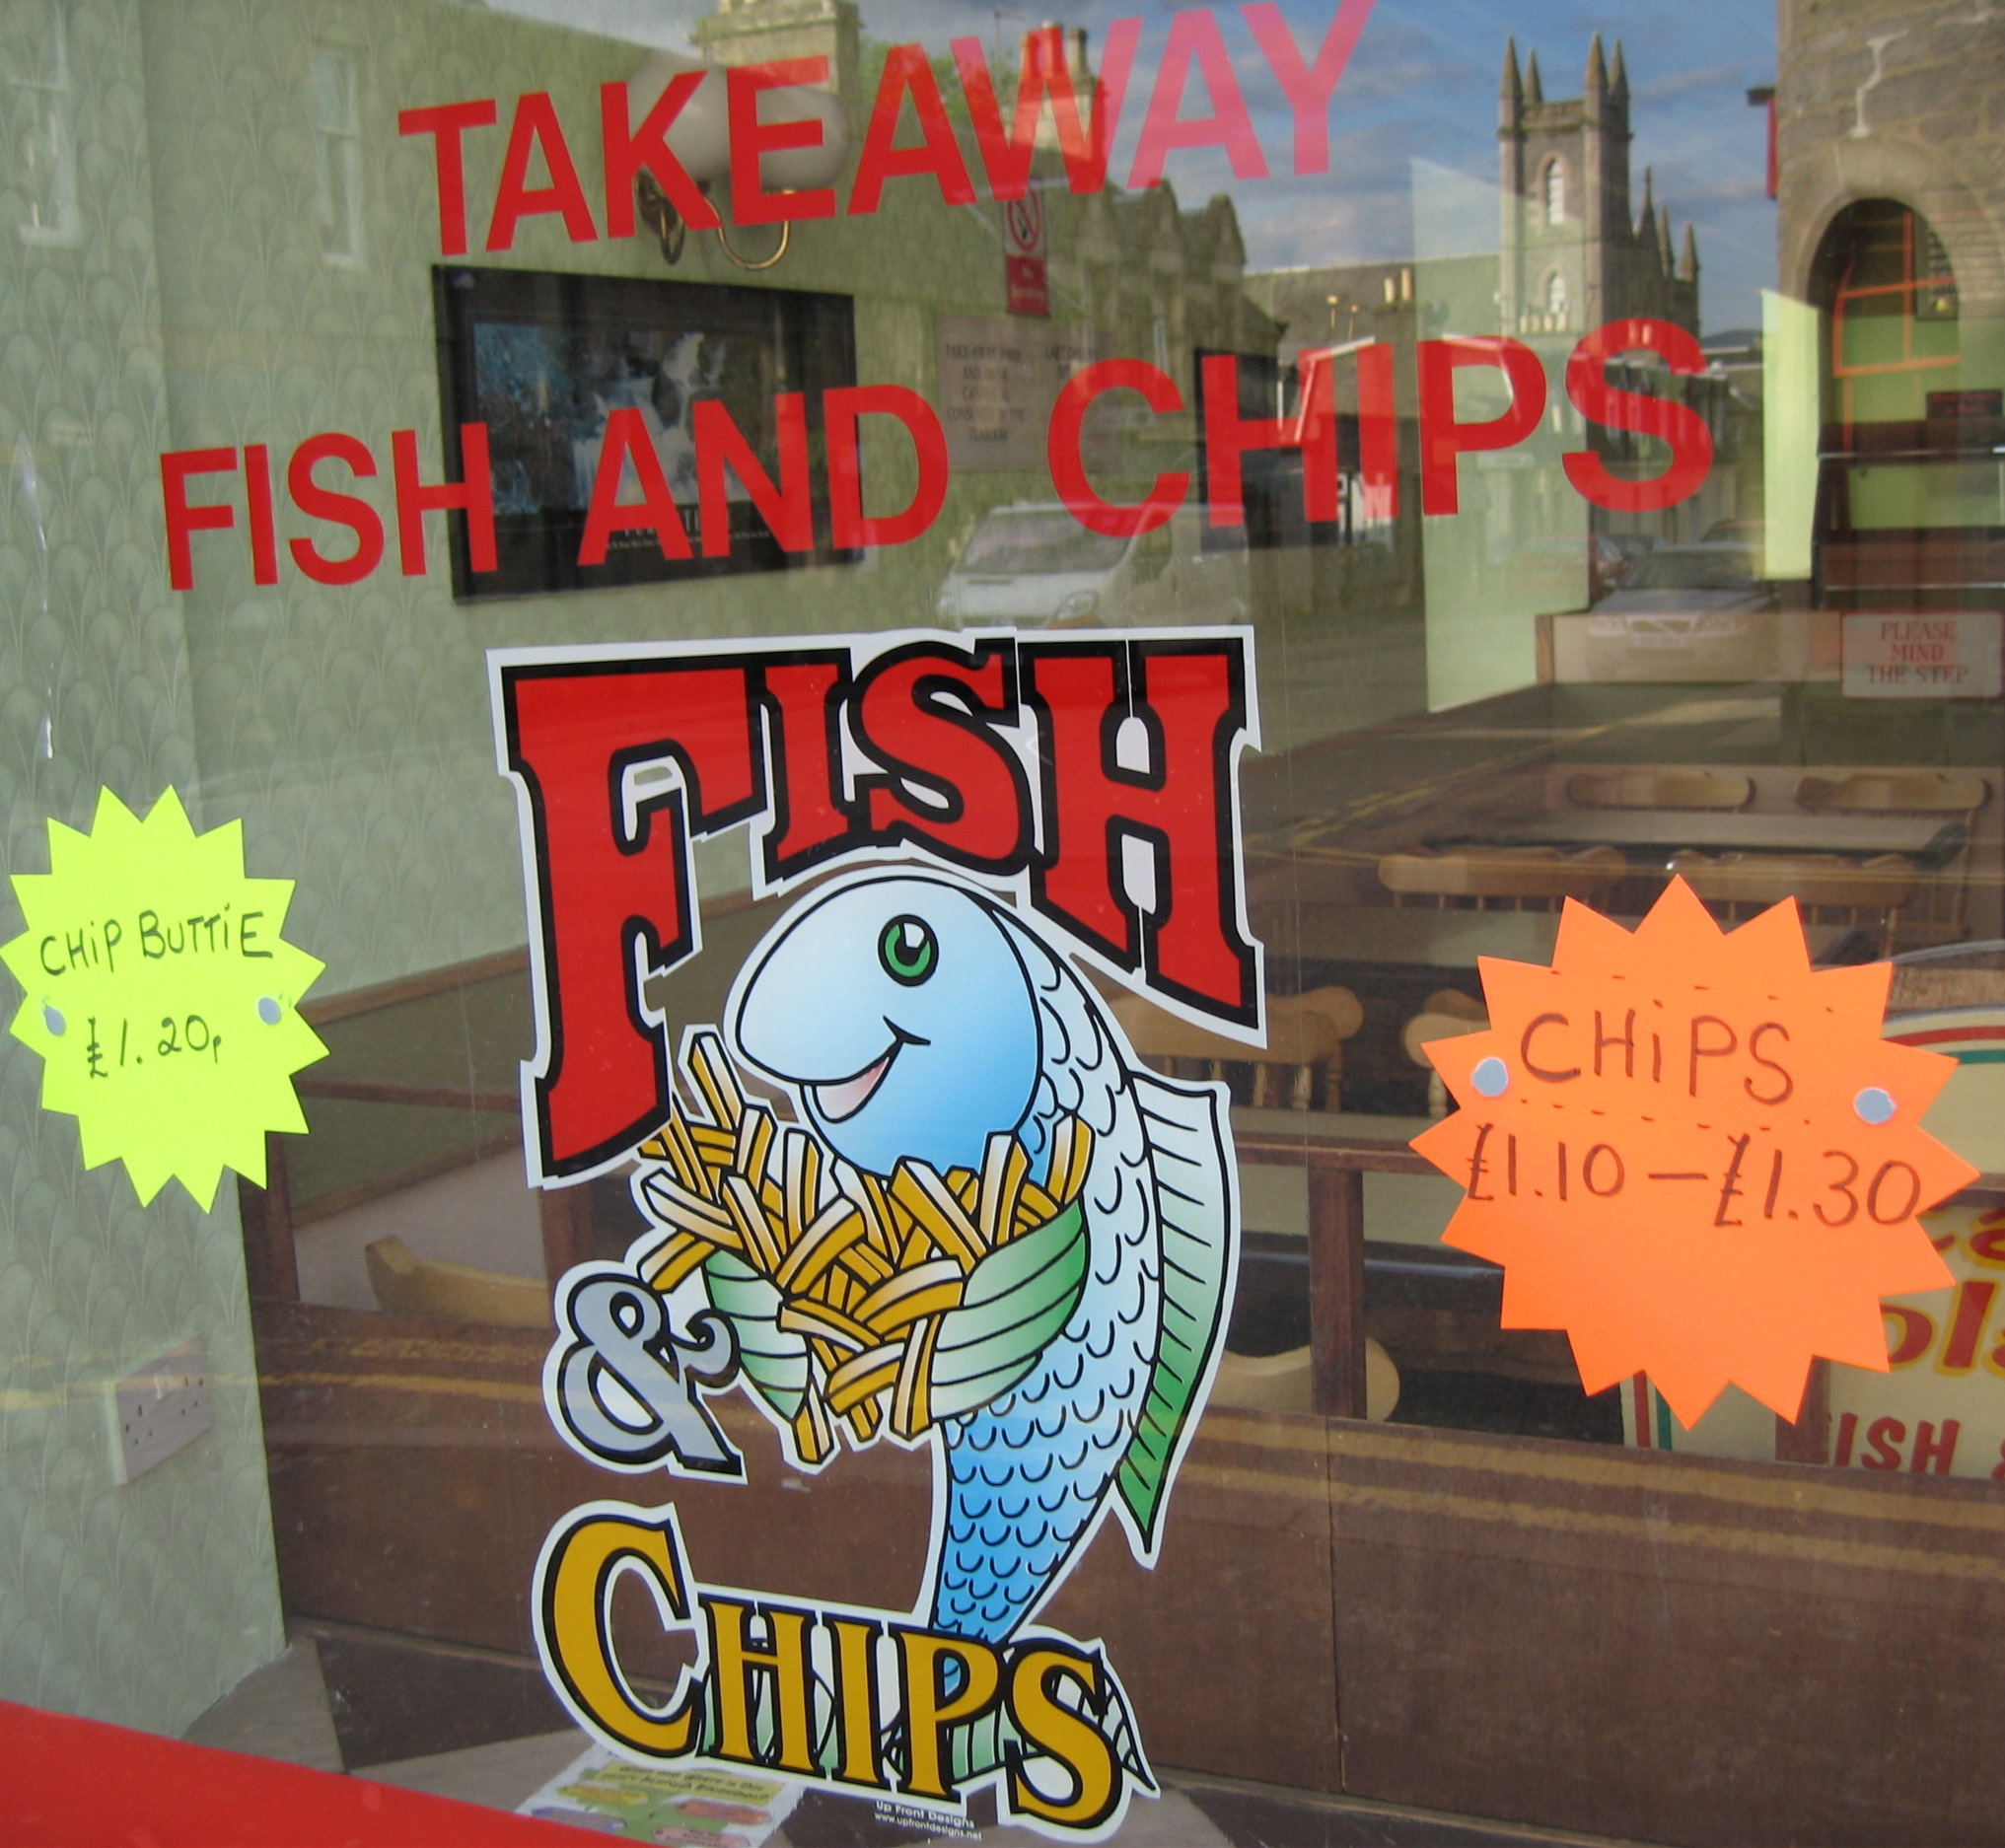 Takeaway+Fish+and+Chips